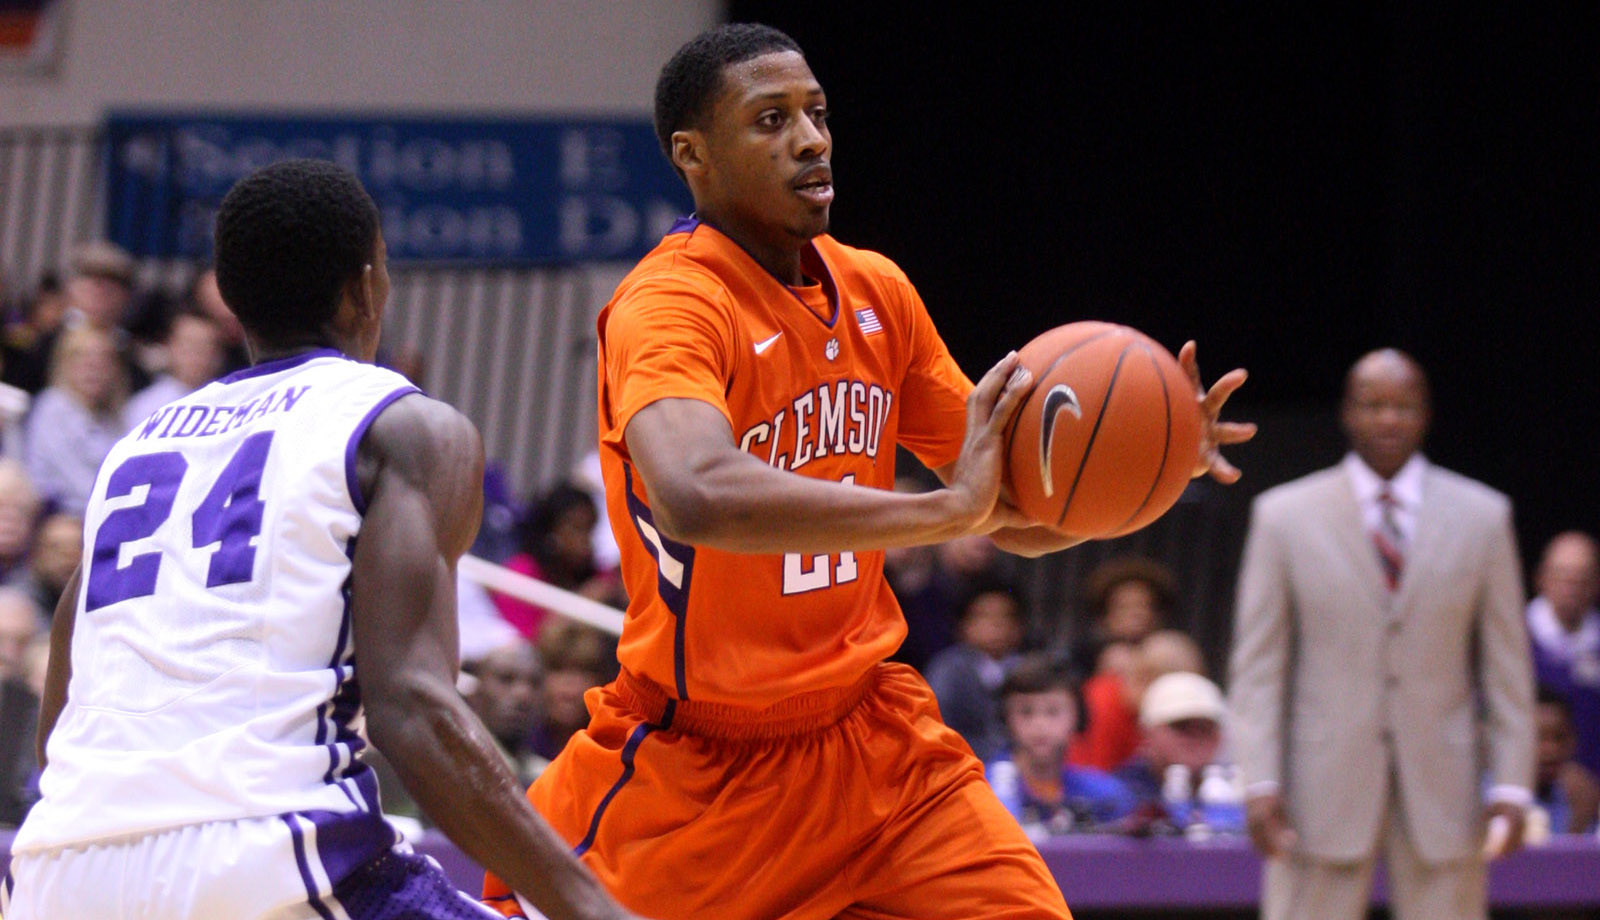 Clemson to Face Gonzaga Thursday in Old Spice Classic